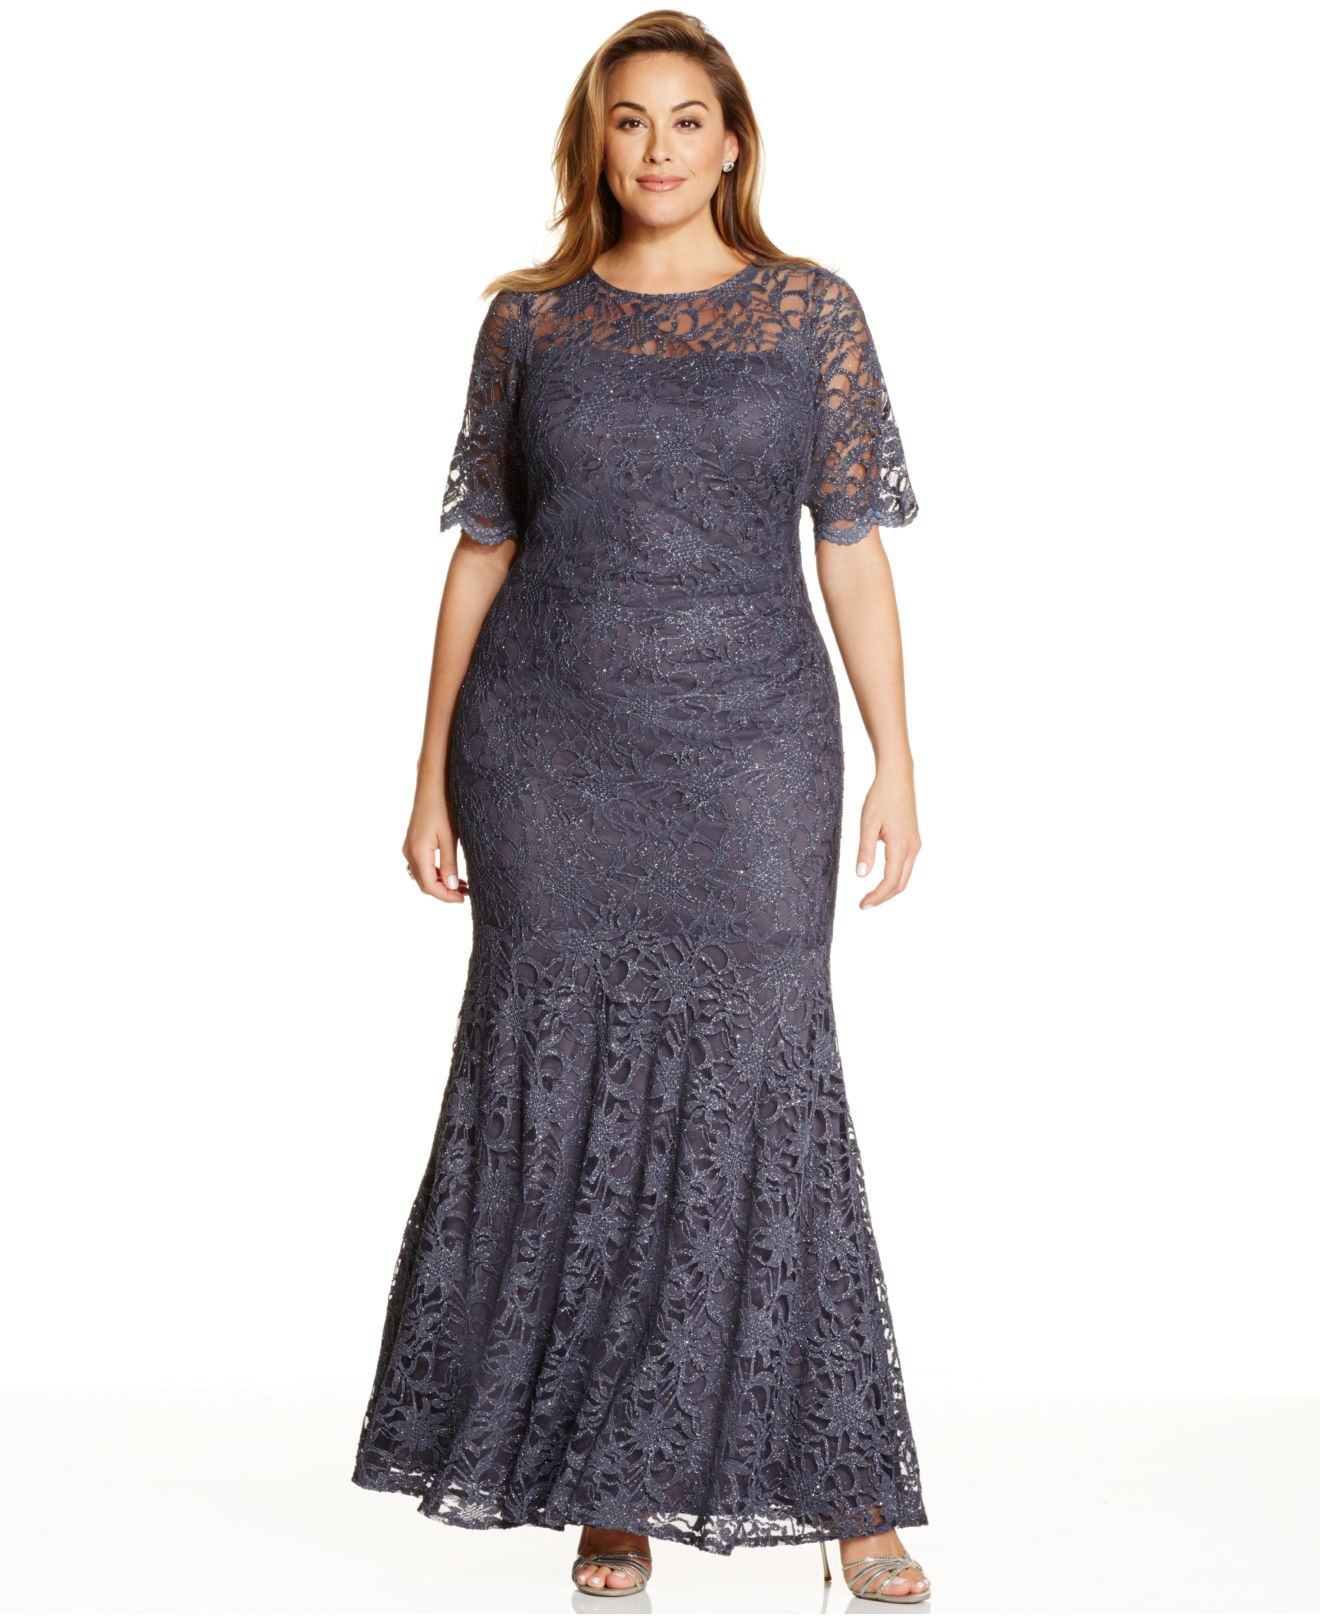 abby z plus size dresses xscape